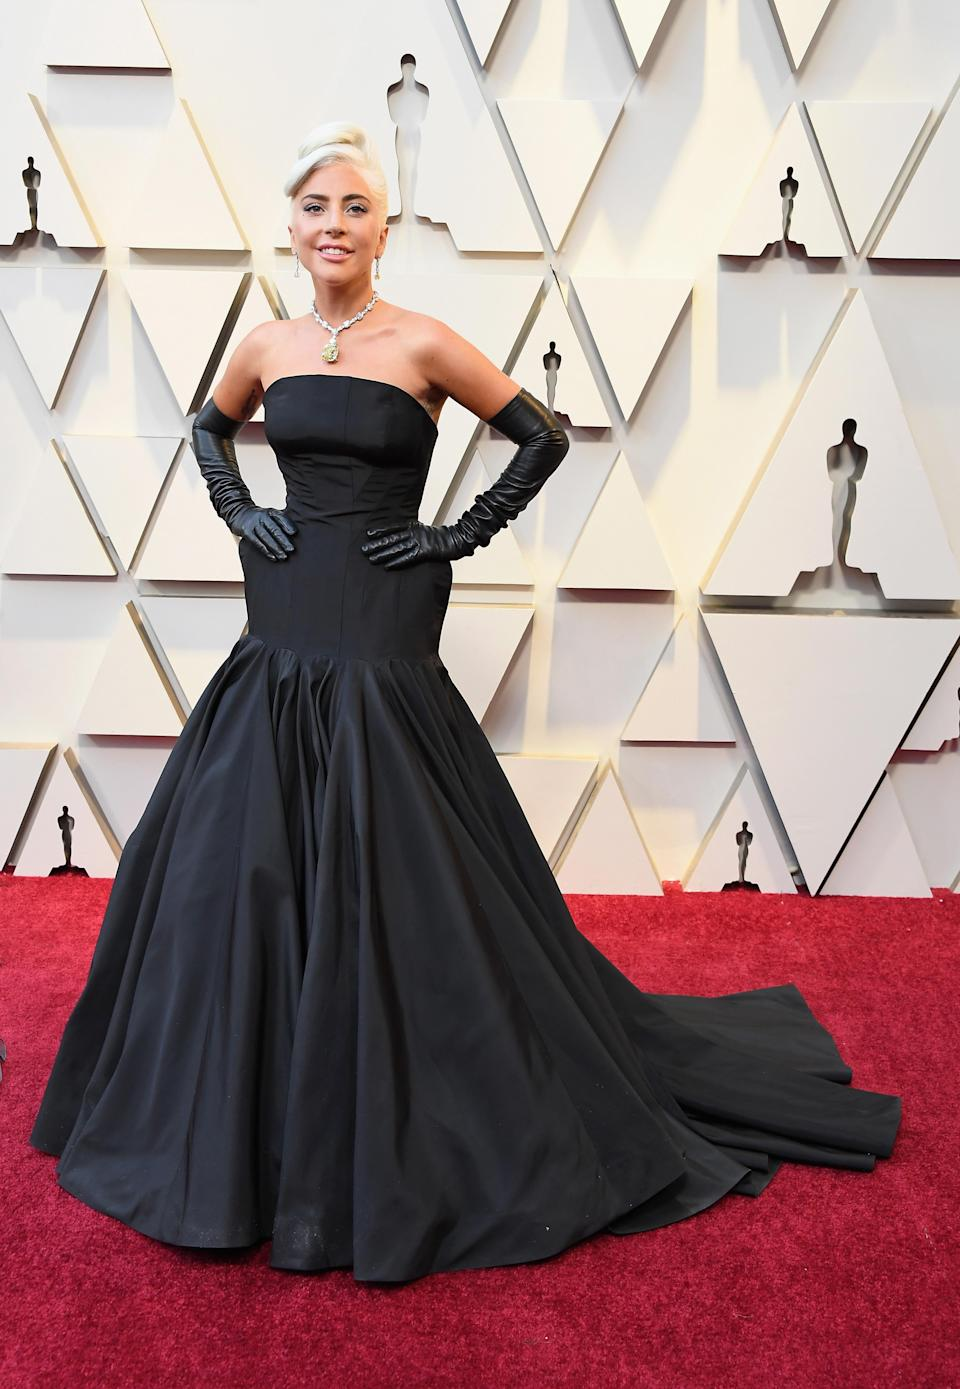 """<p>Lady Gaga capped-off awards season with her most glamorous look yet. The """"A Star is Born"""" actress wore a strapless gown with a structured hip detail by Alexander McQueen. The best actress nominee added extra glamour to her look by wearing a 128 carat cushion cut diamond necklace worth a reported $50 million from Tiffany & Co. The showstopping piece was last worn by Audrey Hepburn in the iconic film, """"Breakfast at Tiffany's."""" <em>[Photo: Getty]</em> </p>"""